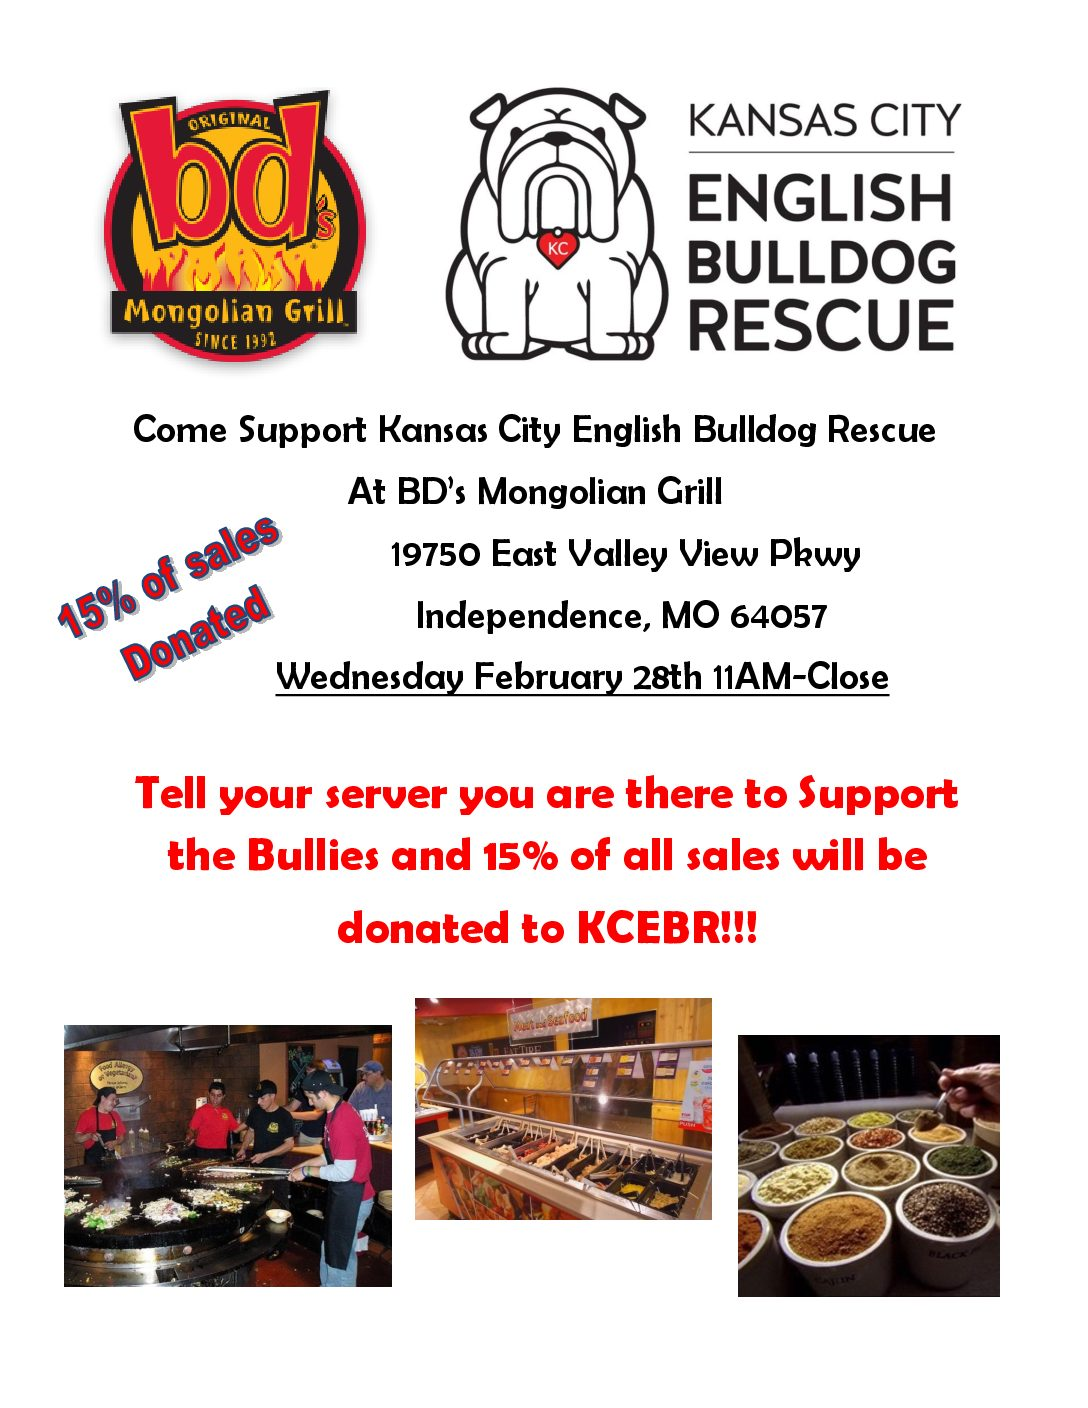 Fundraiser day at bds mongolian grill kansas city english come enjoy some great food drinks and company at bds mongolian grill tell your server you are there to support kansas city english bulldog rescue and 15 forumfinder Choice Image